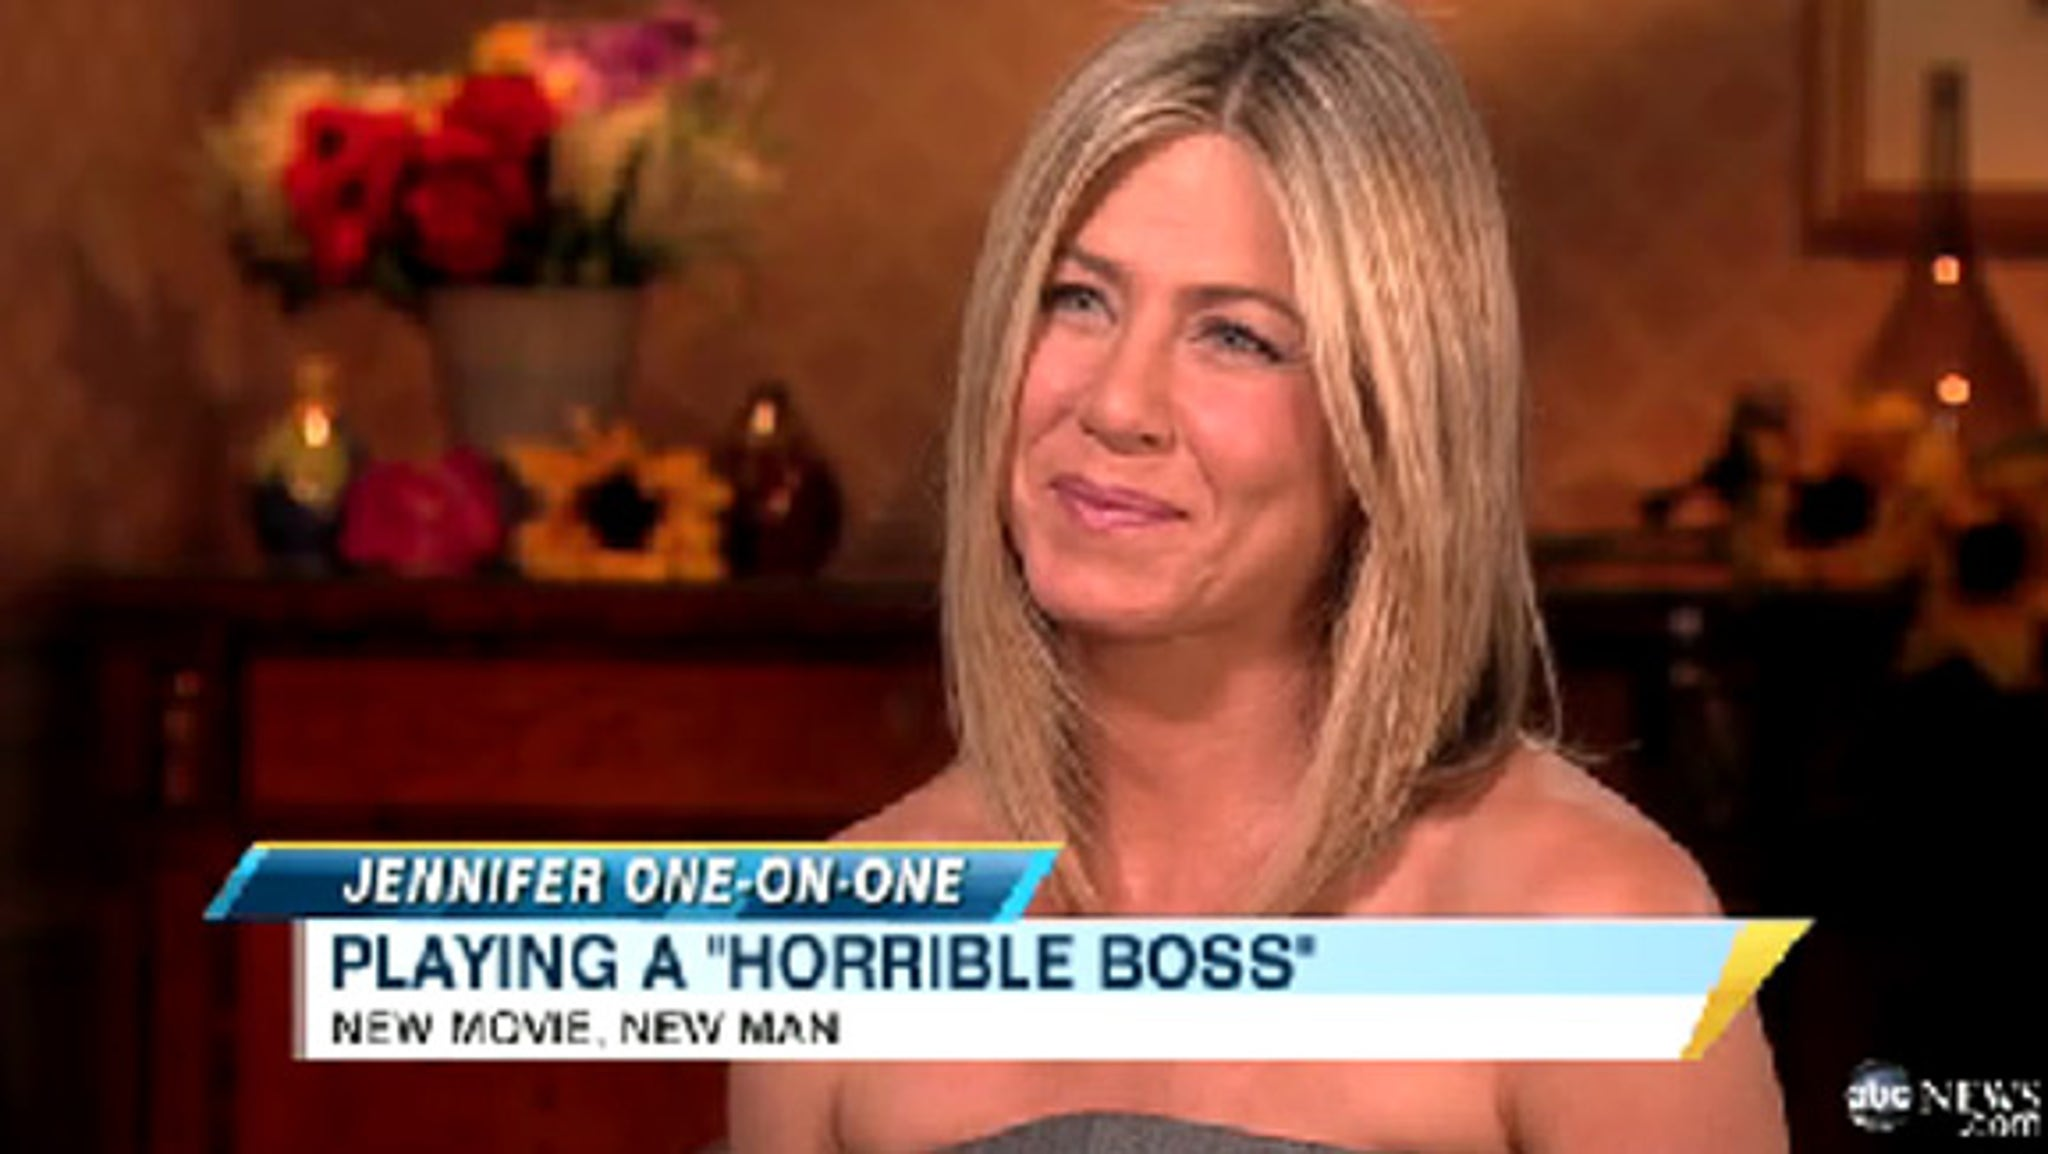 More Plastic Surgery? Jennifer Aniston Gets Fillers For